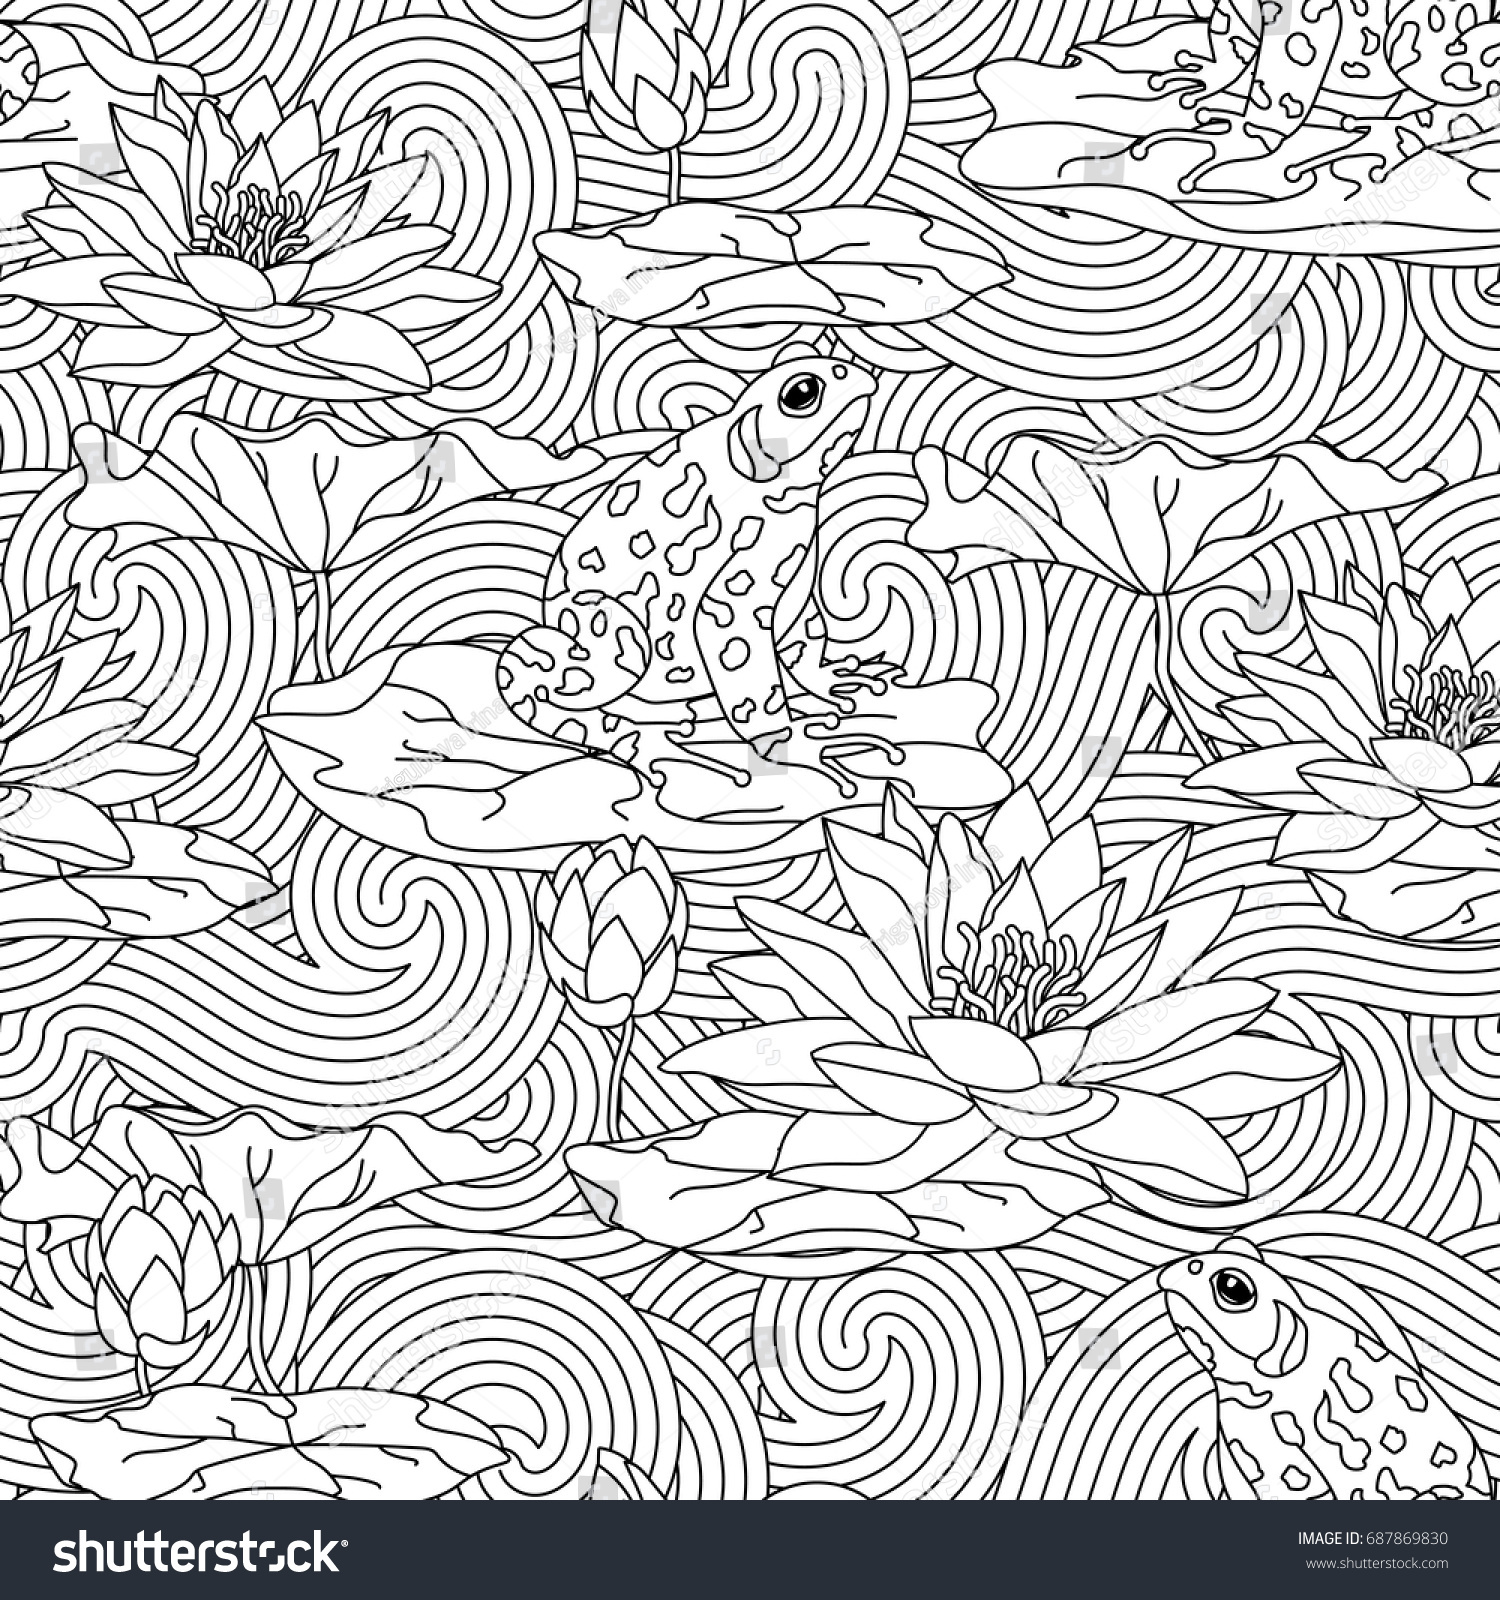 Lotus designs coloring book - Adult Antistress Coloring Page With Water Lily And The Frog Seamless Pattern Cards With